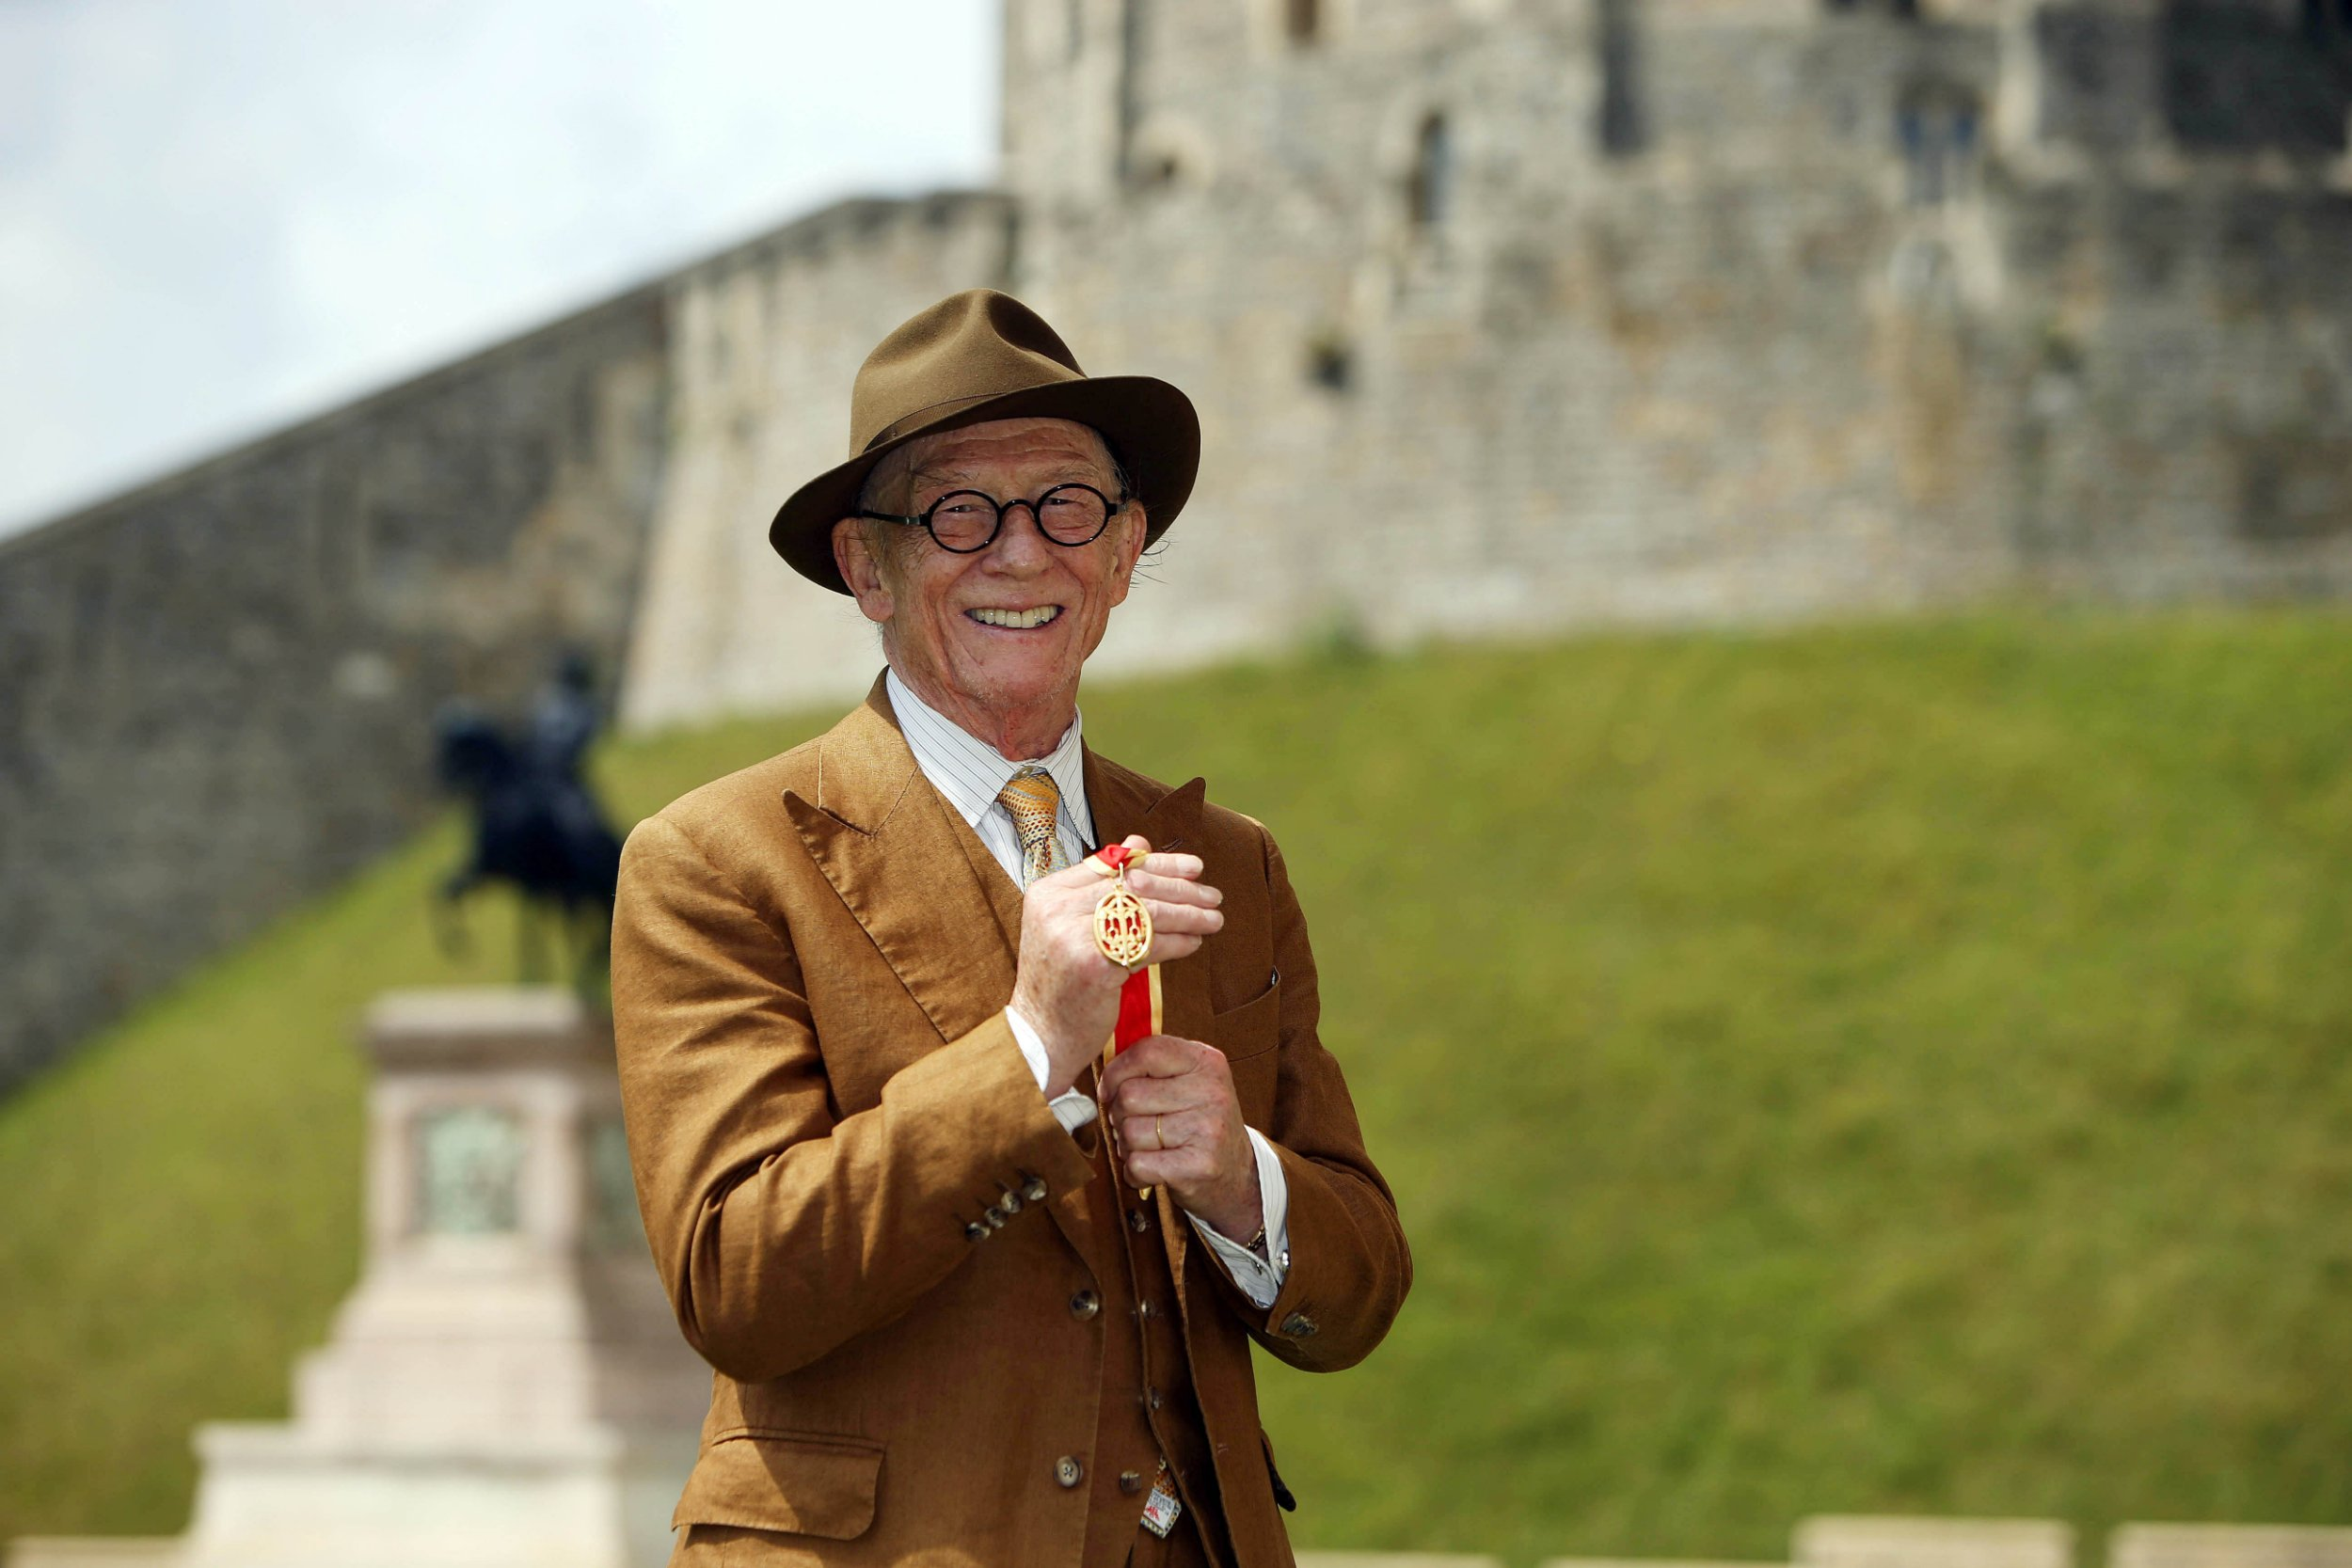 JK Rowling and Stephen Fry lead celebrity tributes to 'remarkable' John Hurt as actor dies aged 77